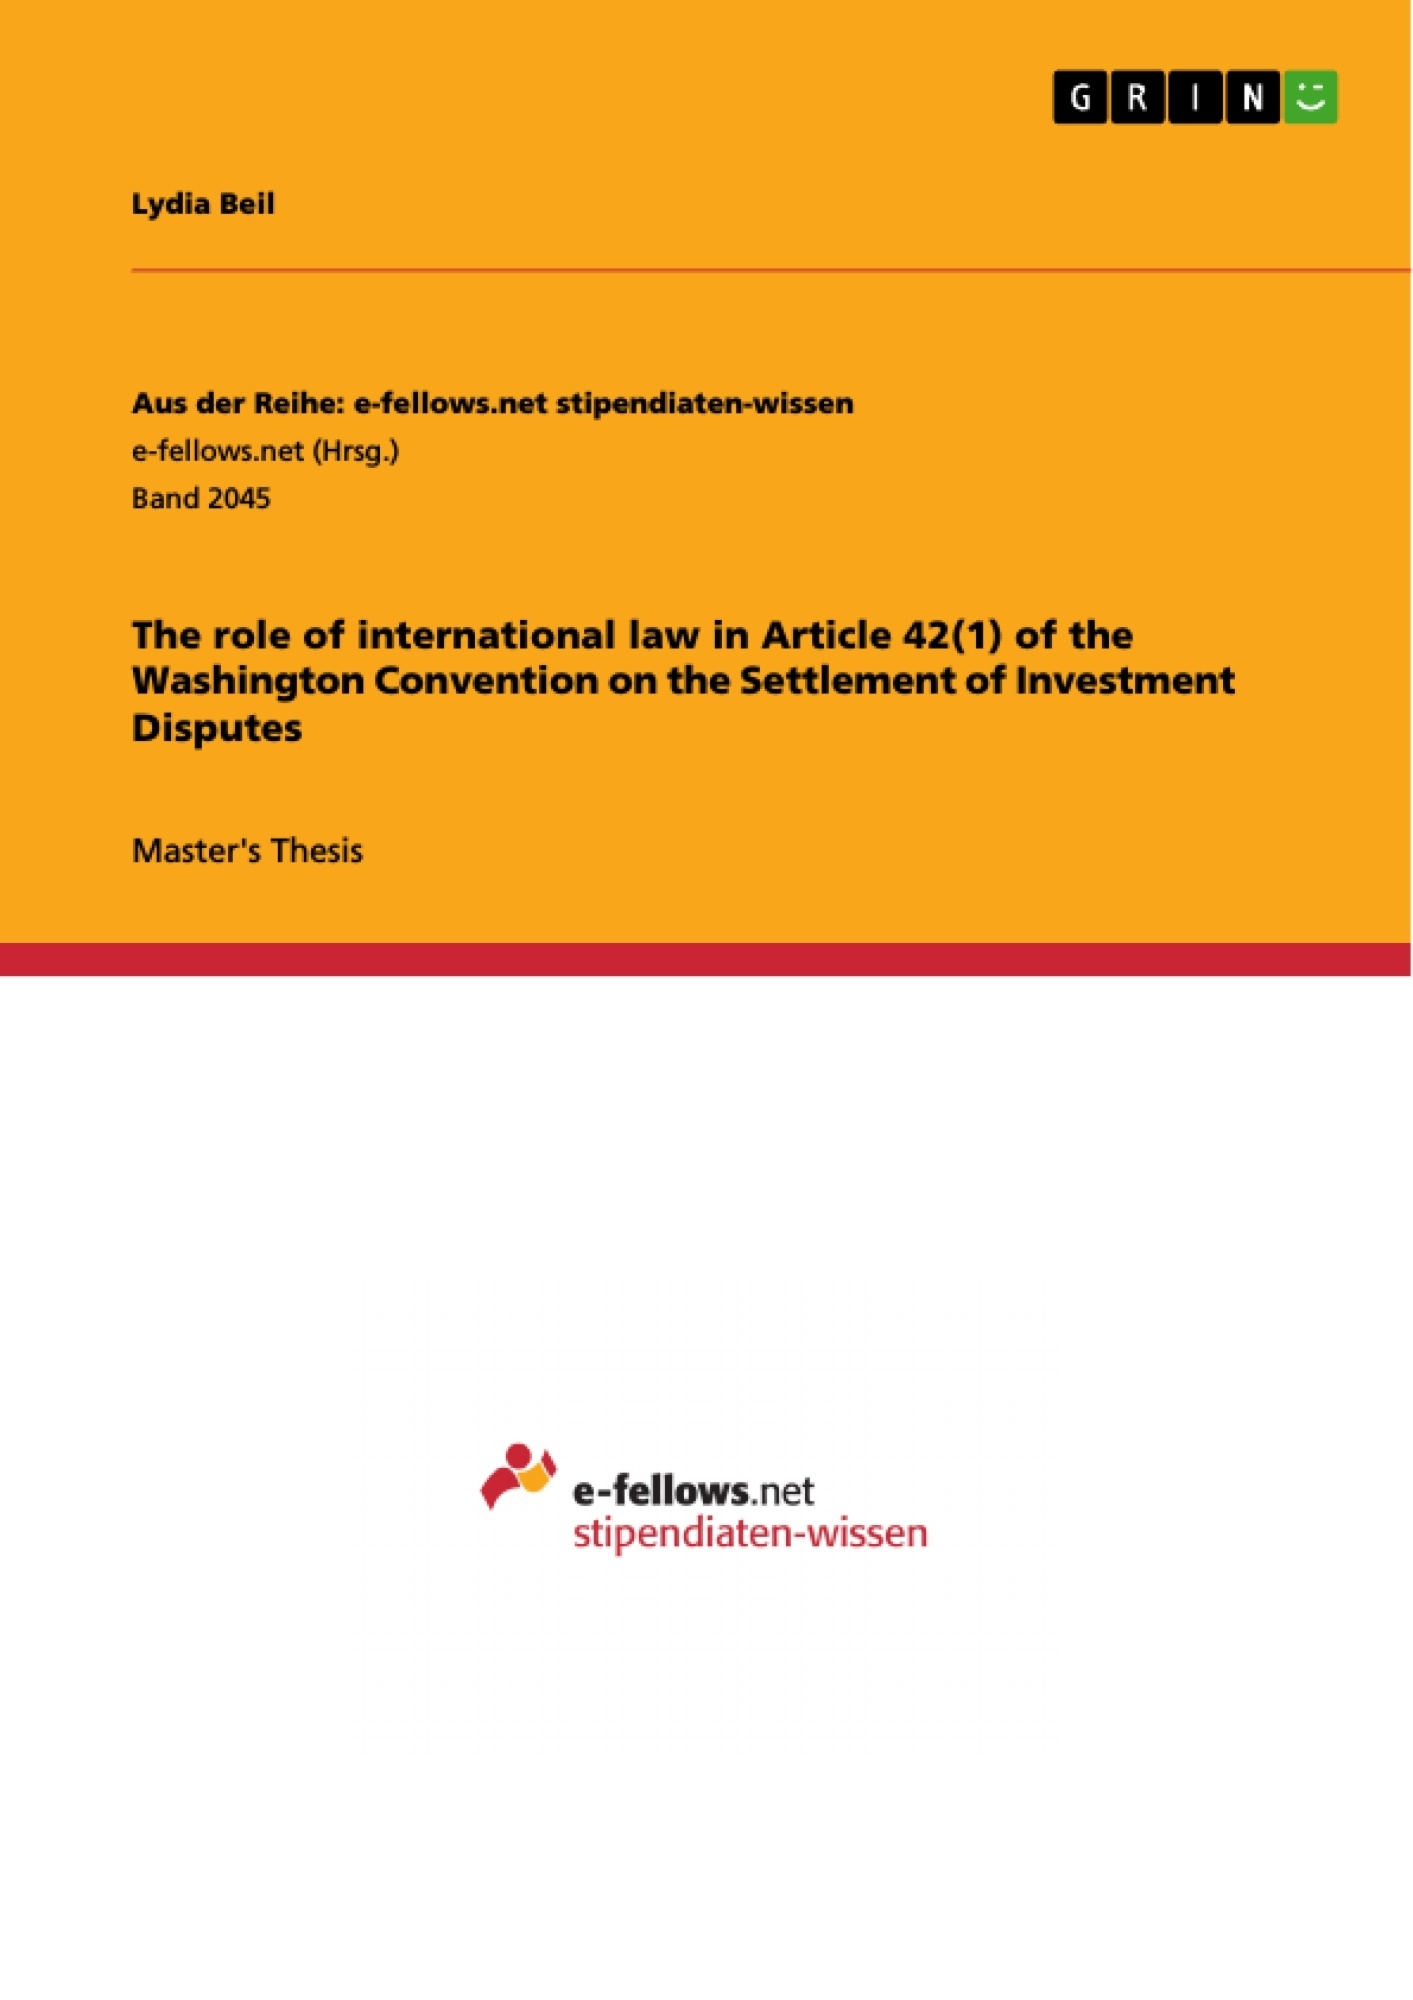 Title: The role of international law in Article 42(1) of the Washington Convention on the Settlement of Investment Disputes